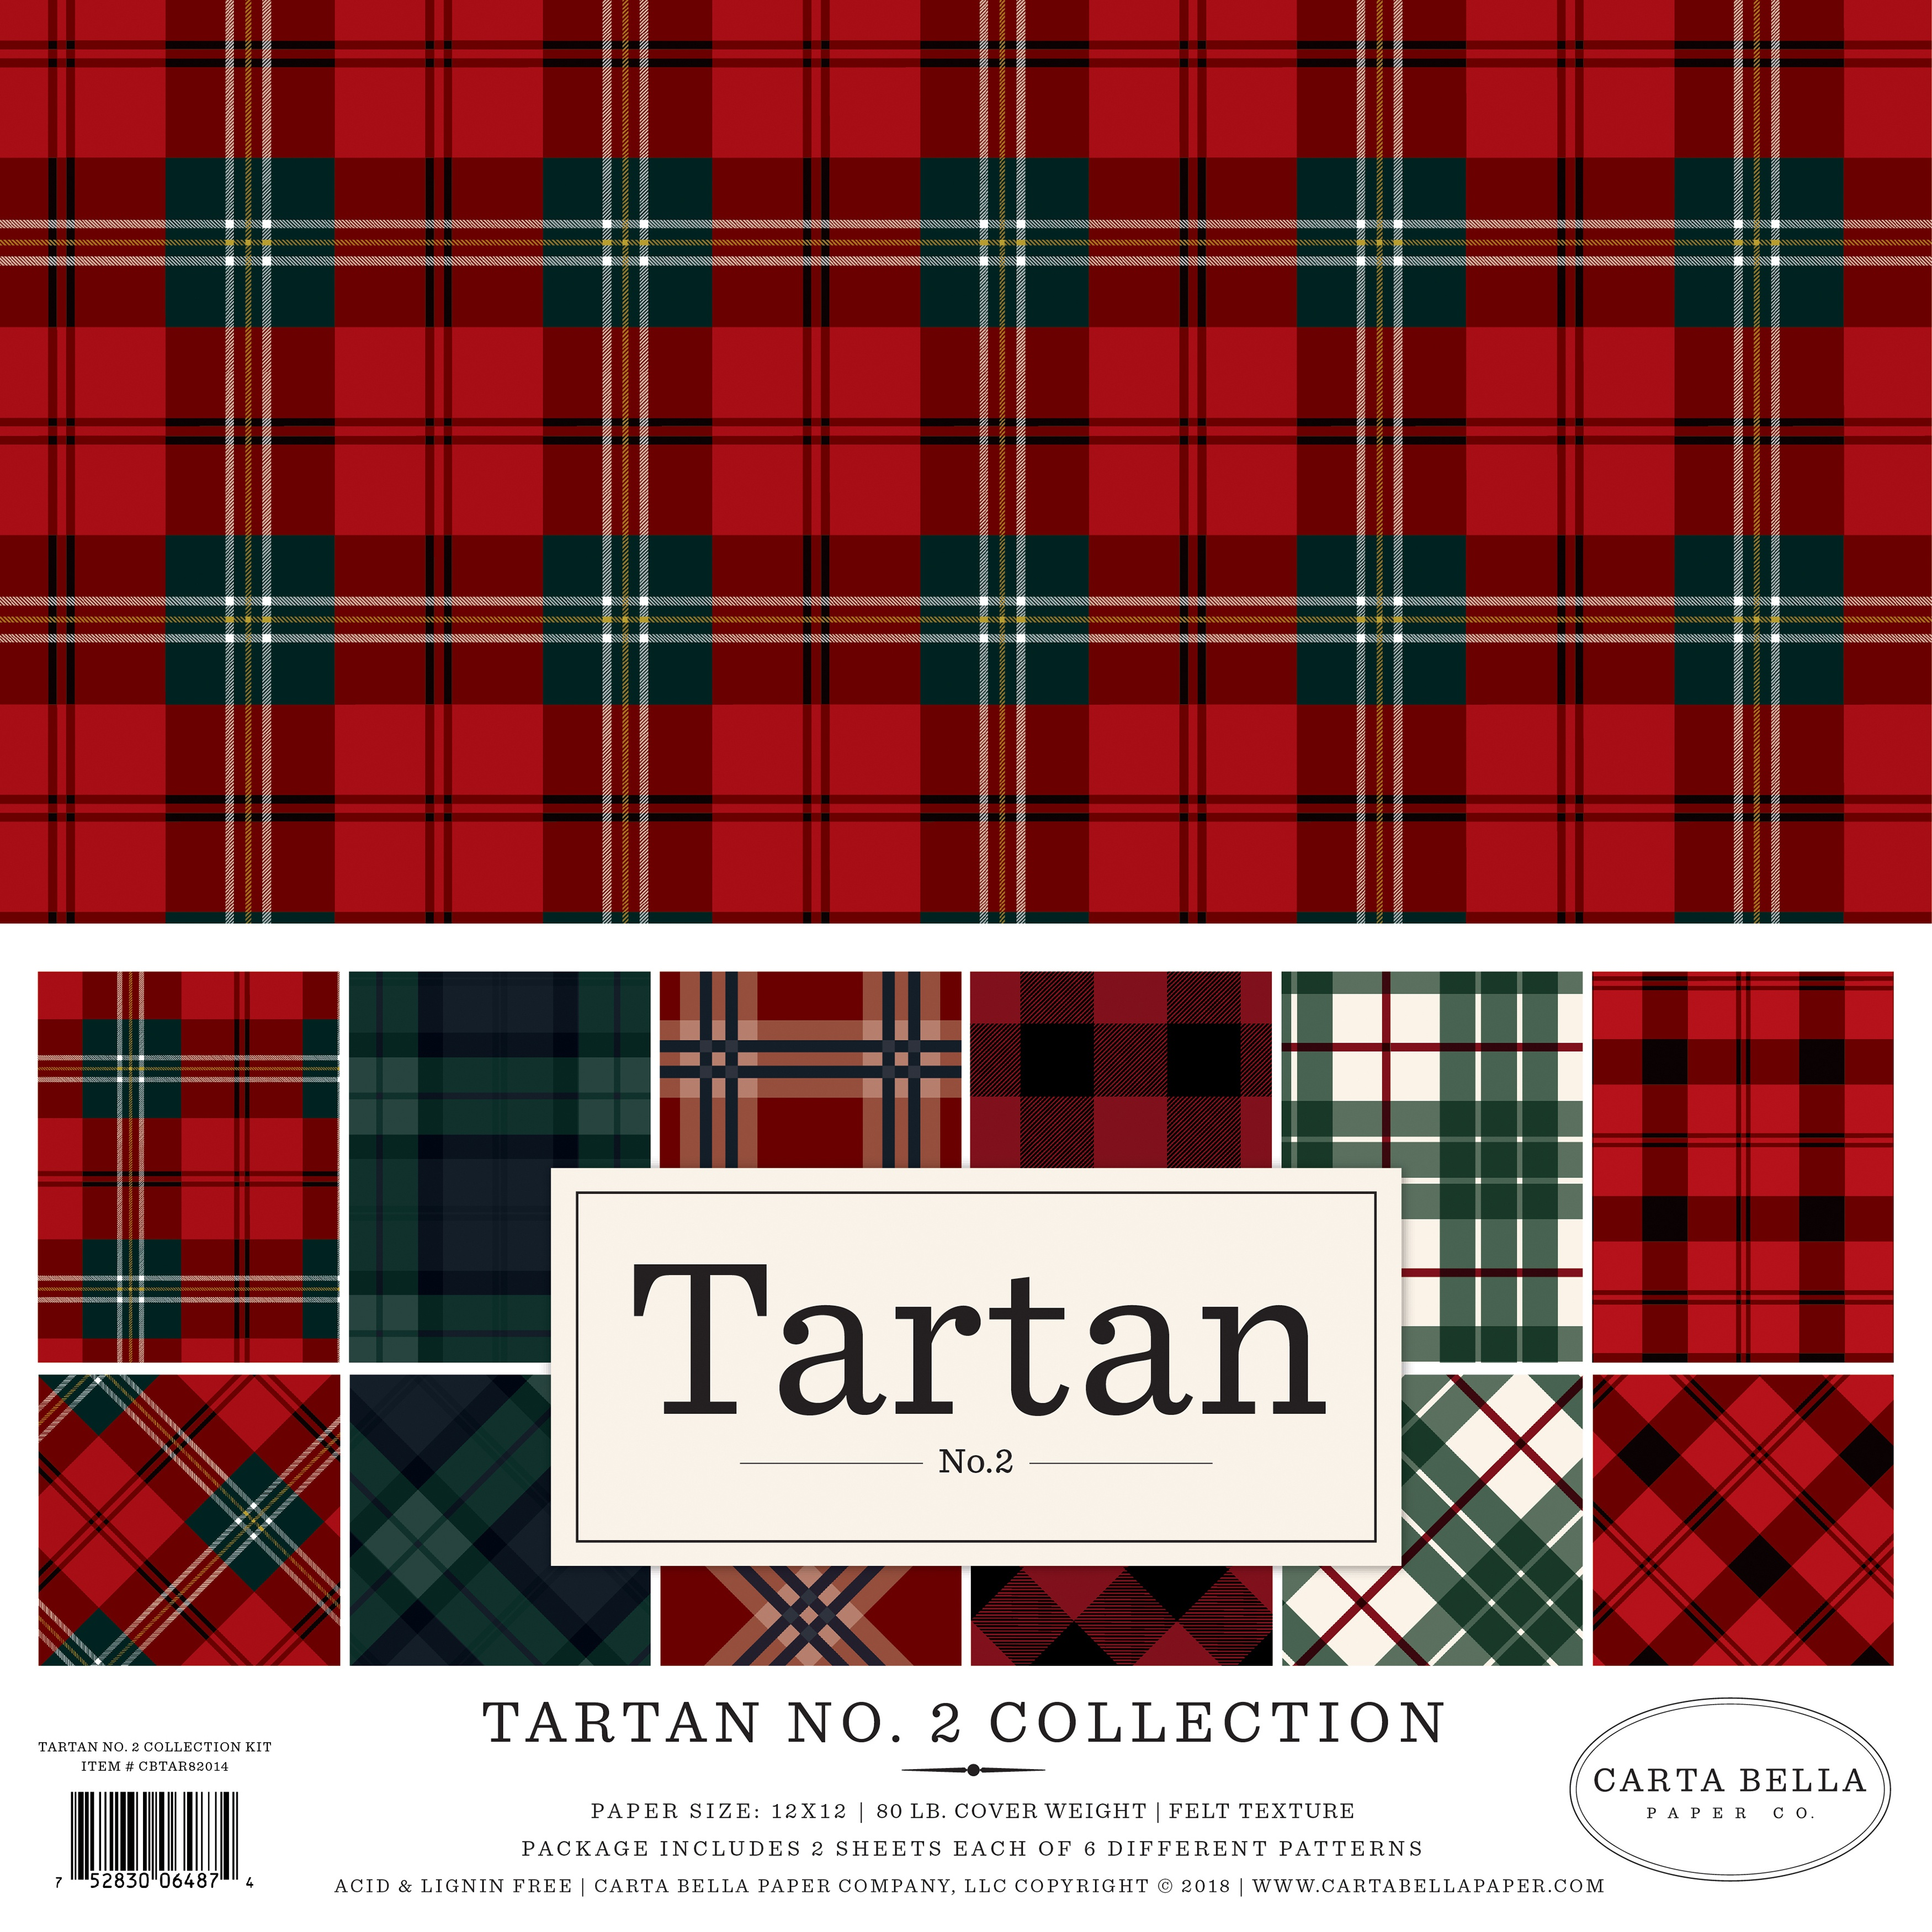 Carta Bella Double-Sided Collection Kit 12X12 12/Pkg-Tartan No